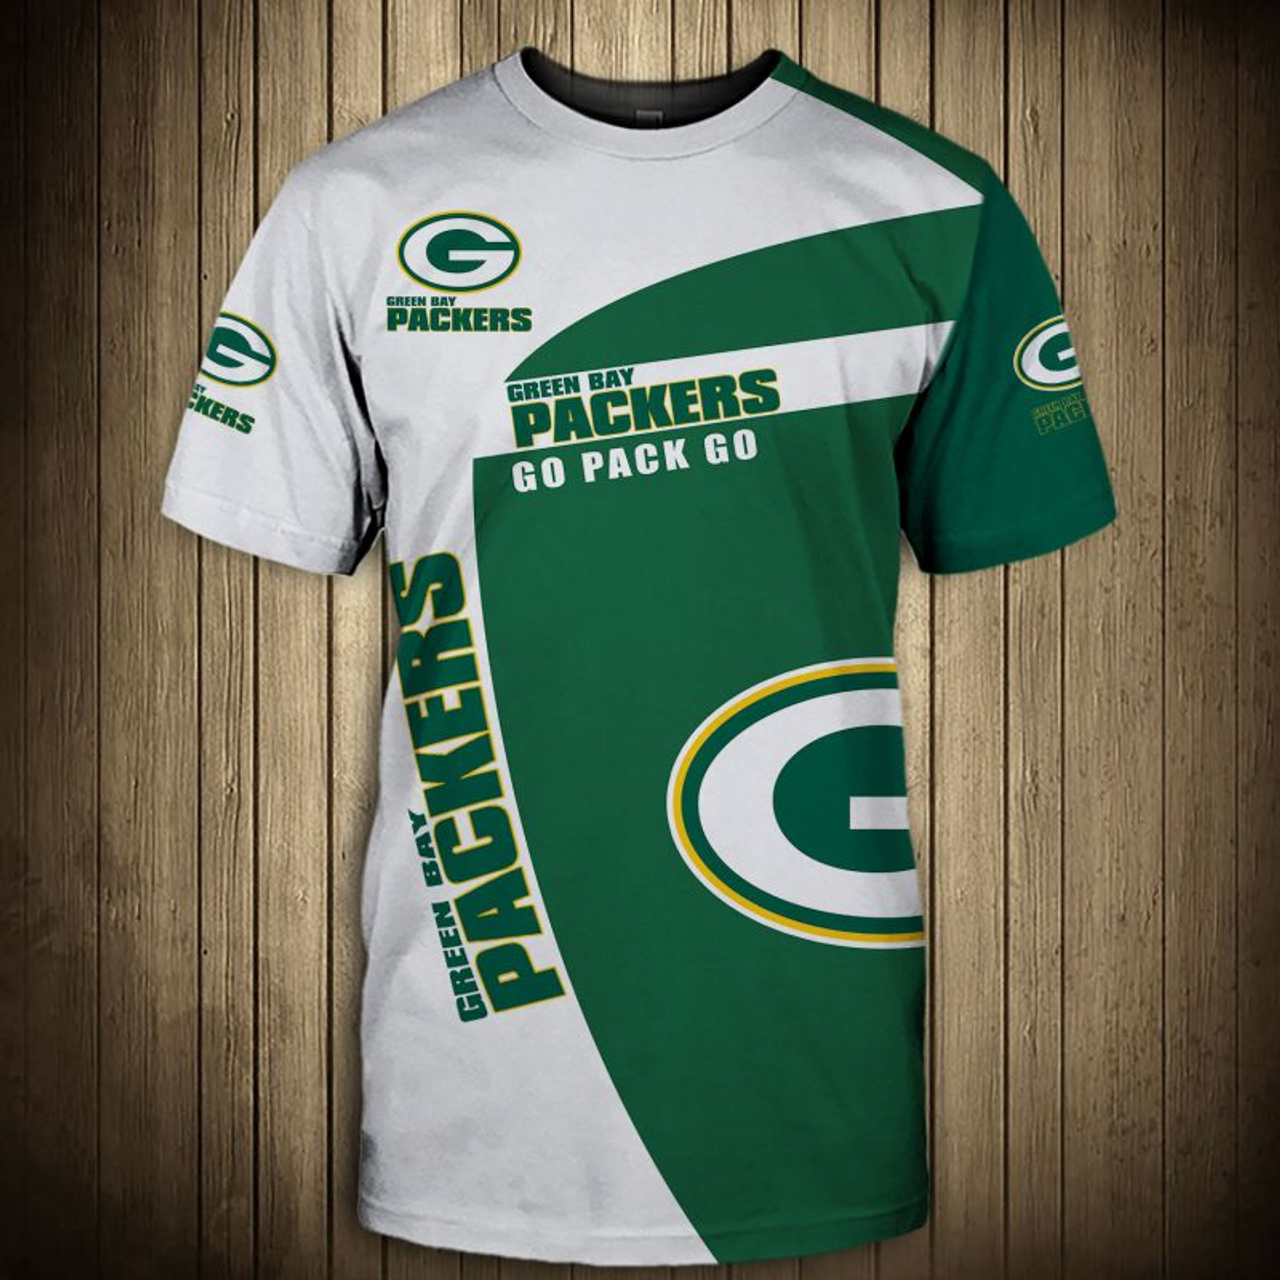 best service 6e04f fd1d7 **(OFFICIAL-N.F.L.GREEN-BAY-PACKERS-TRENDY-GAME-DAY-TEAM-TEES/CUSTOM-3D-GRAPHIC-PRINTED-DETAILED-DOUBLE-SIDED-ALL-OVER/CLASSIC-OFFICIAL-PACKERS-LOGOS  ...